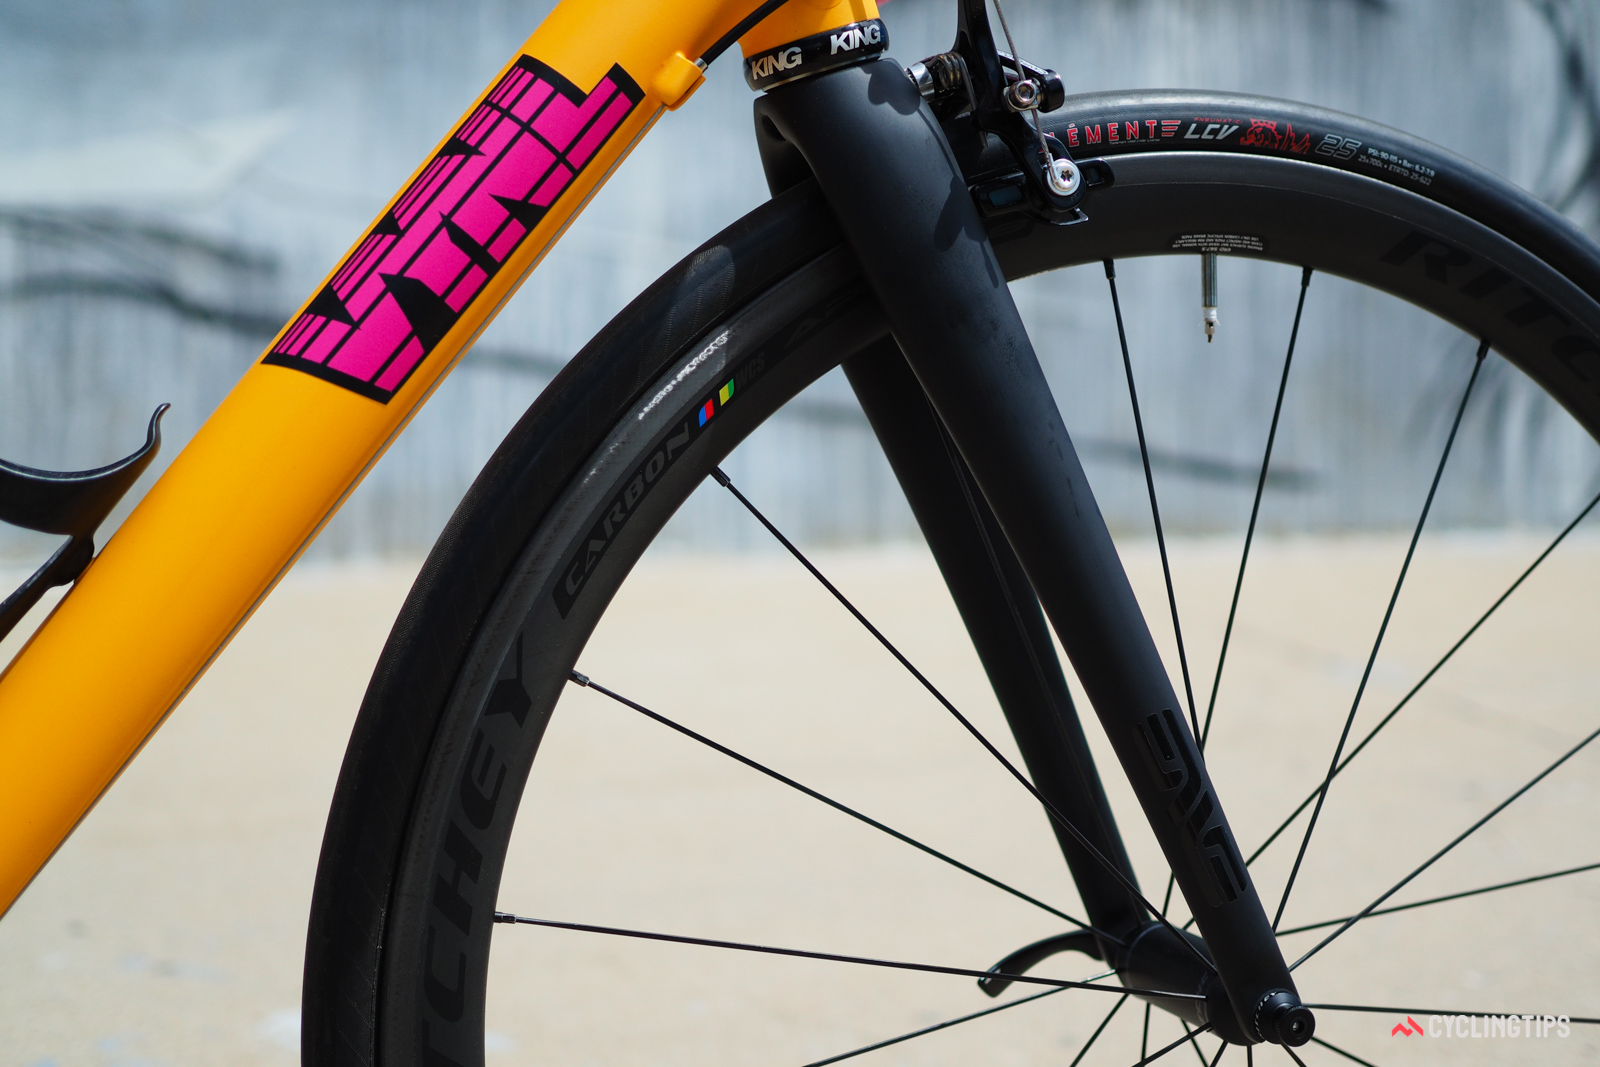 VYNL offers customers their choice of a bare frame, or a frame with an Enve 2.0 carbon fork.